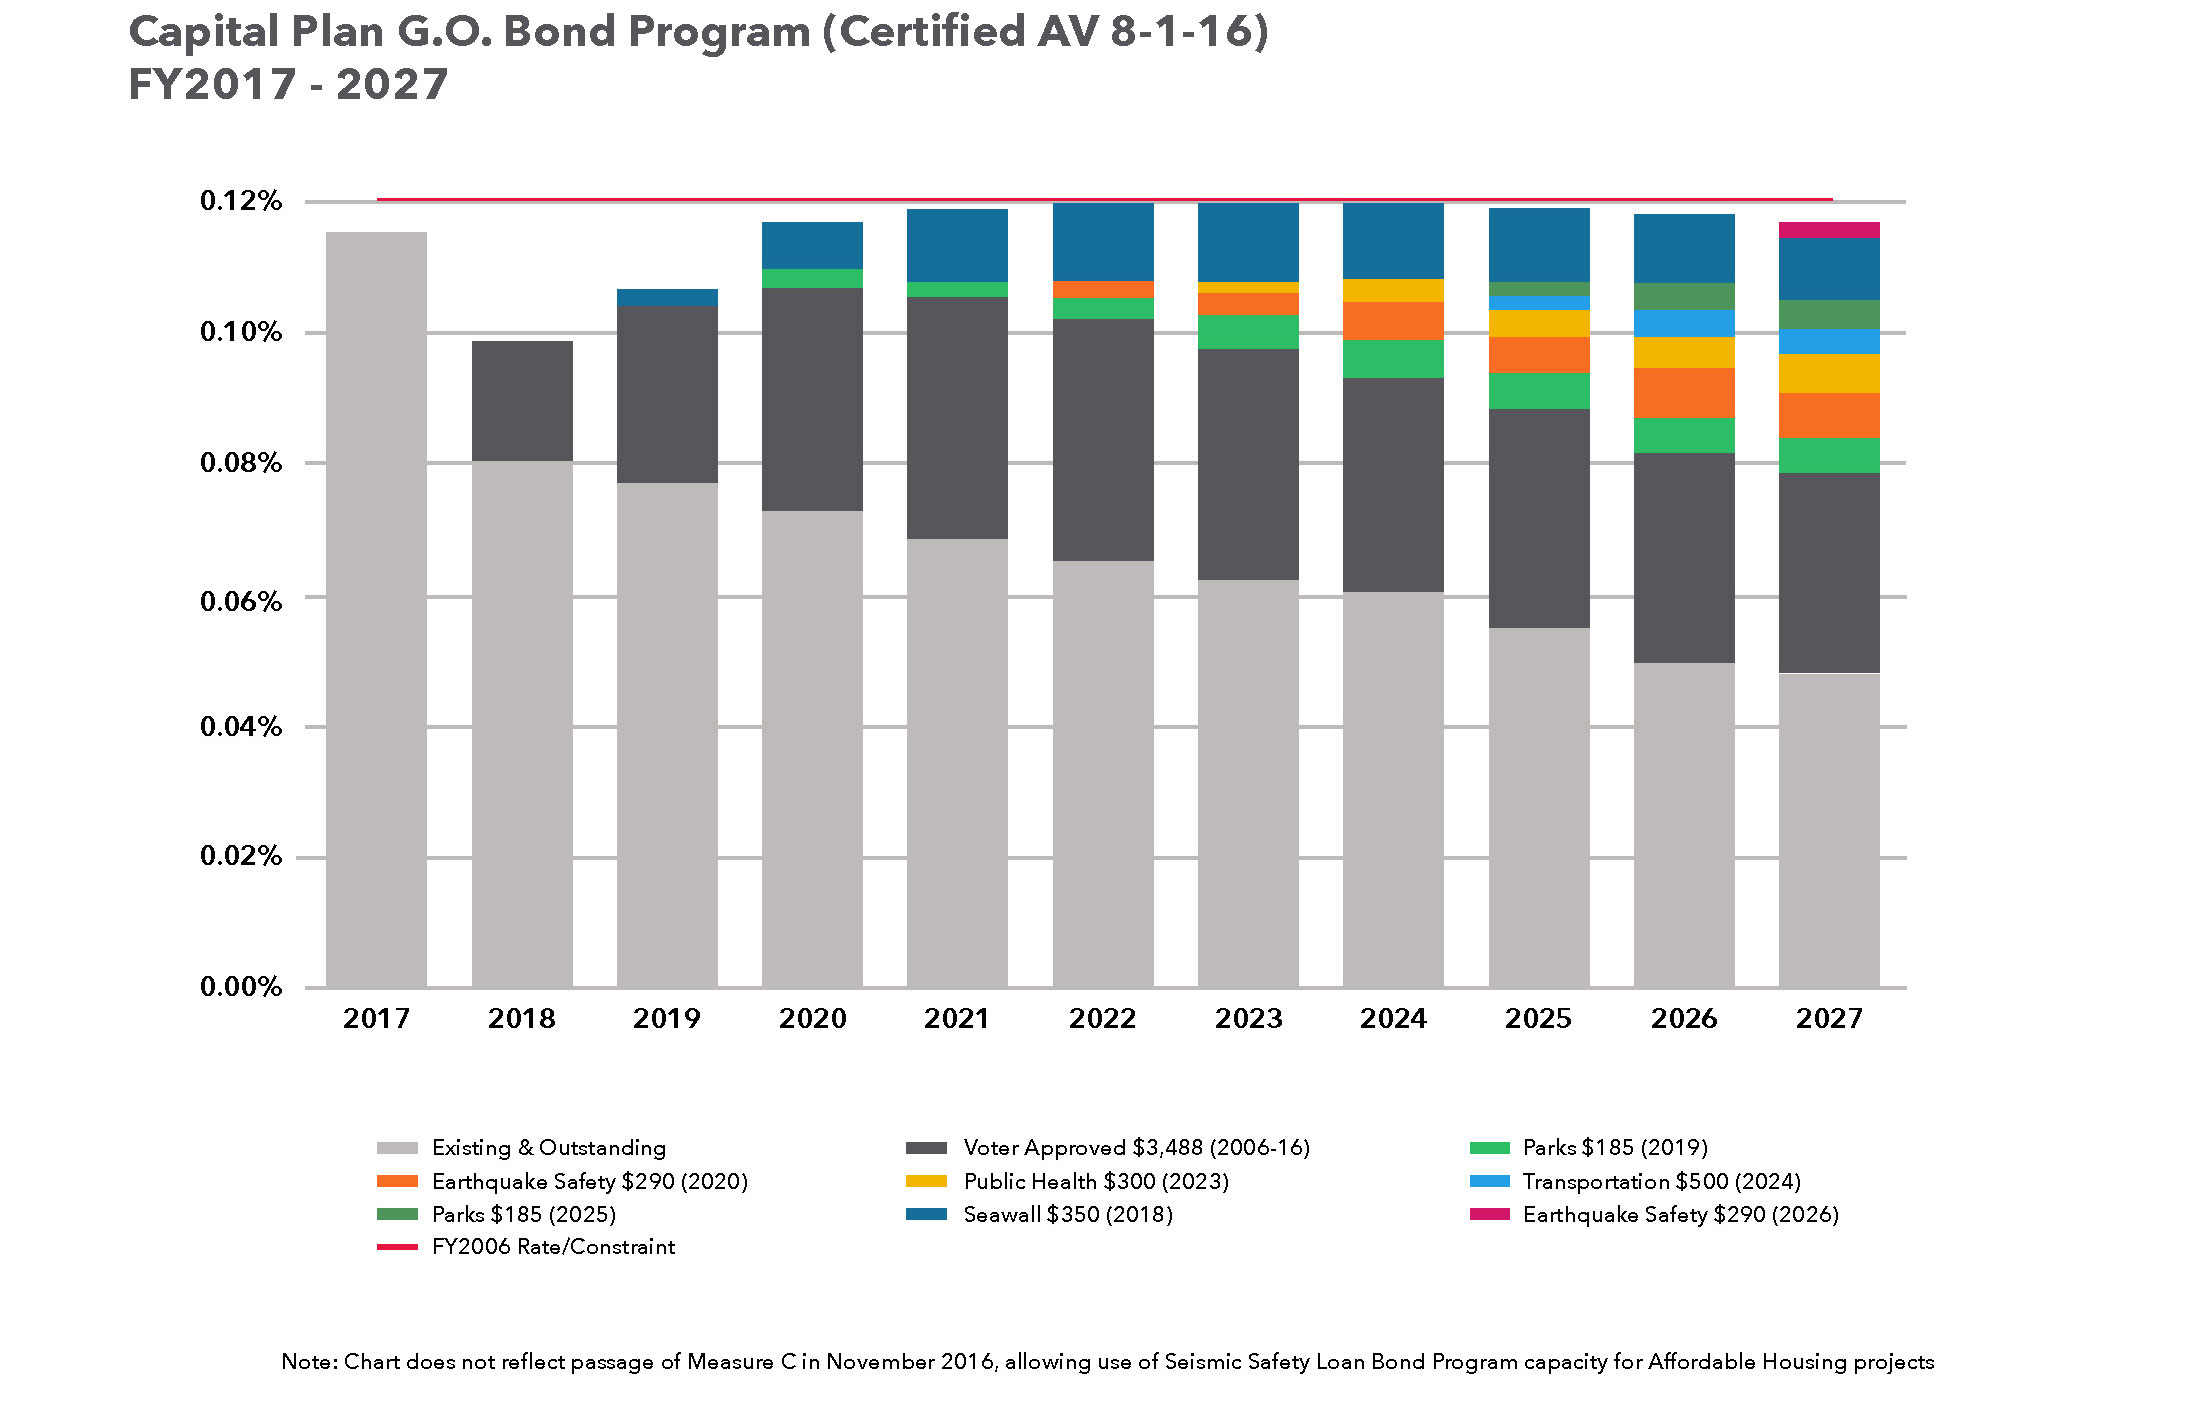 Capital Plan G.O. Bond Program